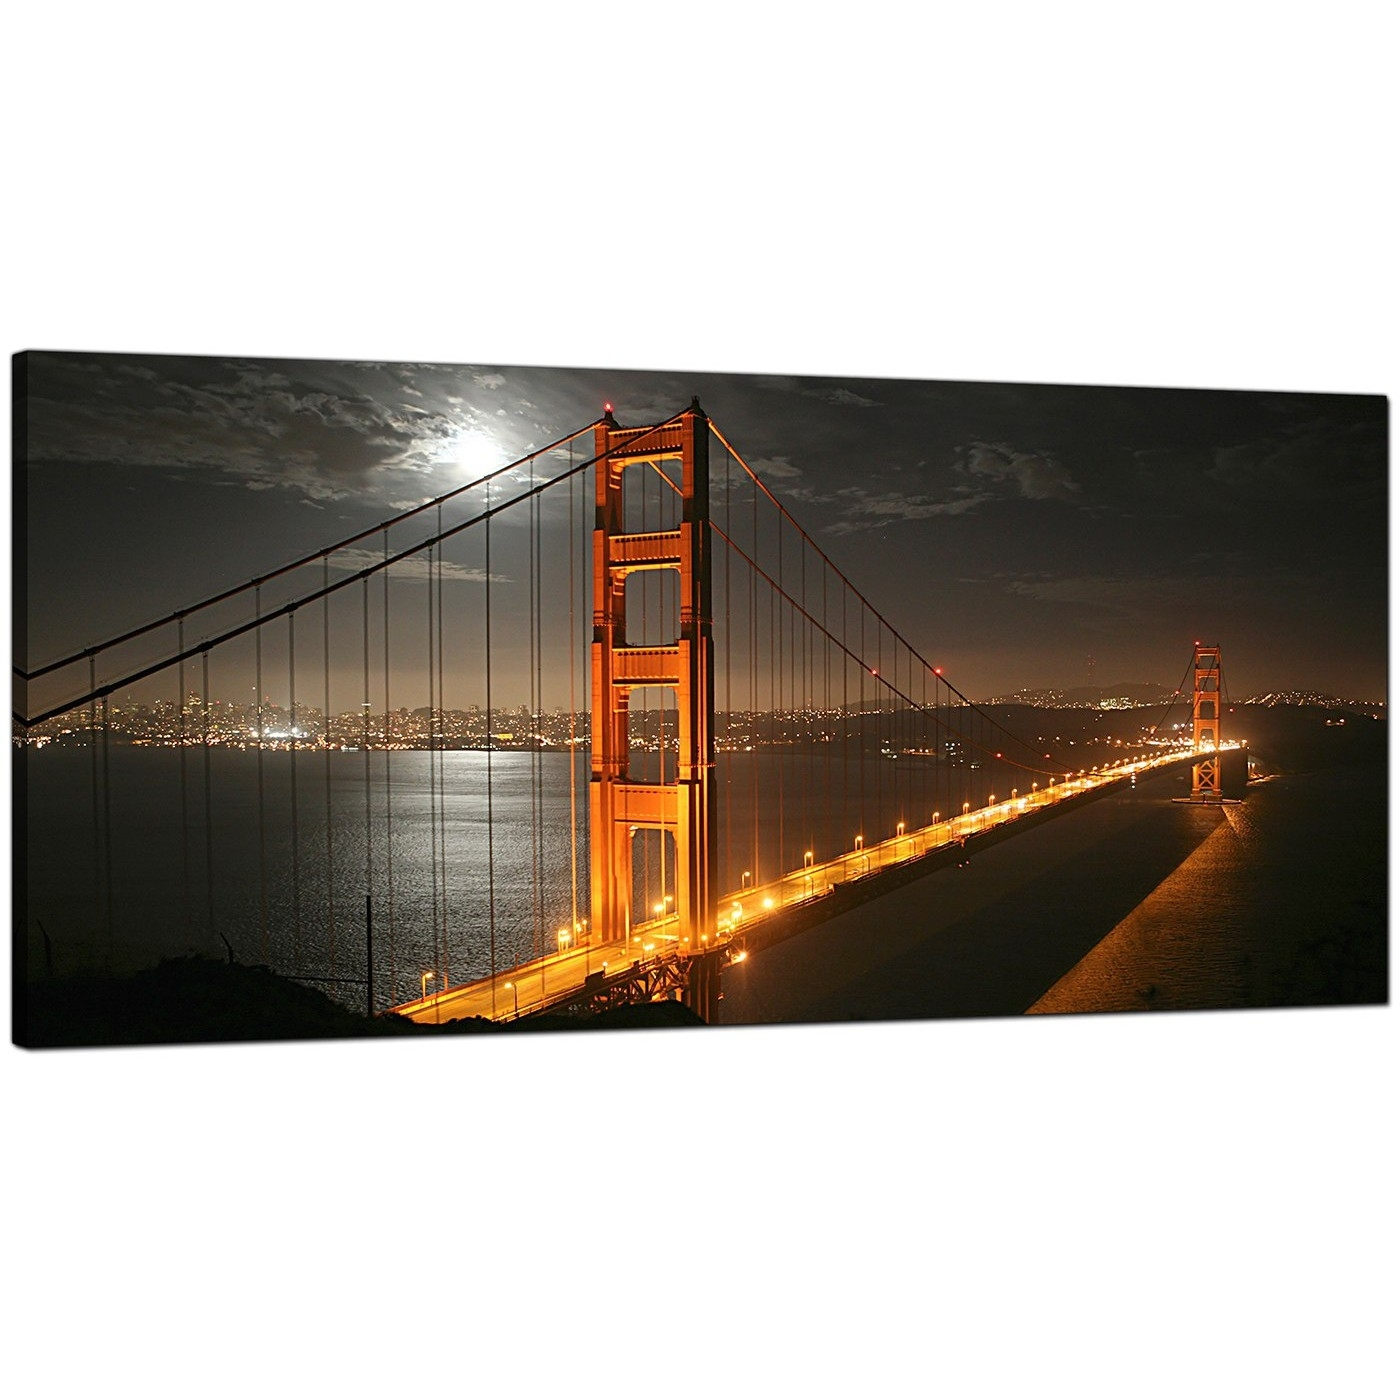 Cheap Canvas Prints Of Night Time San Francisco For Your Dining Room Intended For Most Recent San Francisco Wall Art (Gallery 15 of 20)